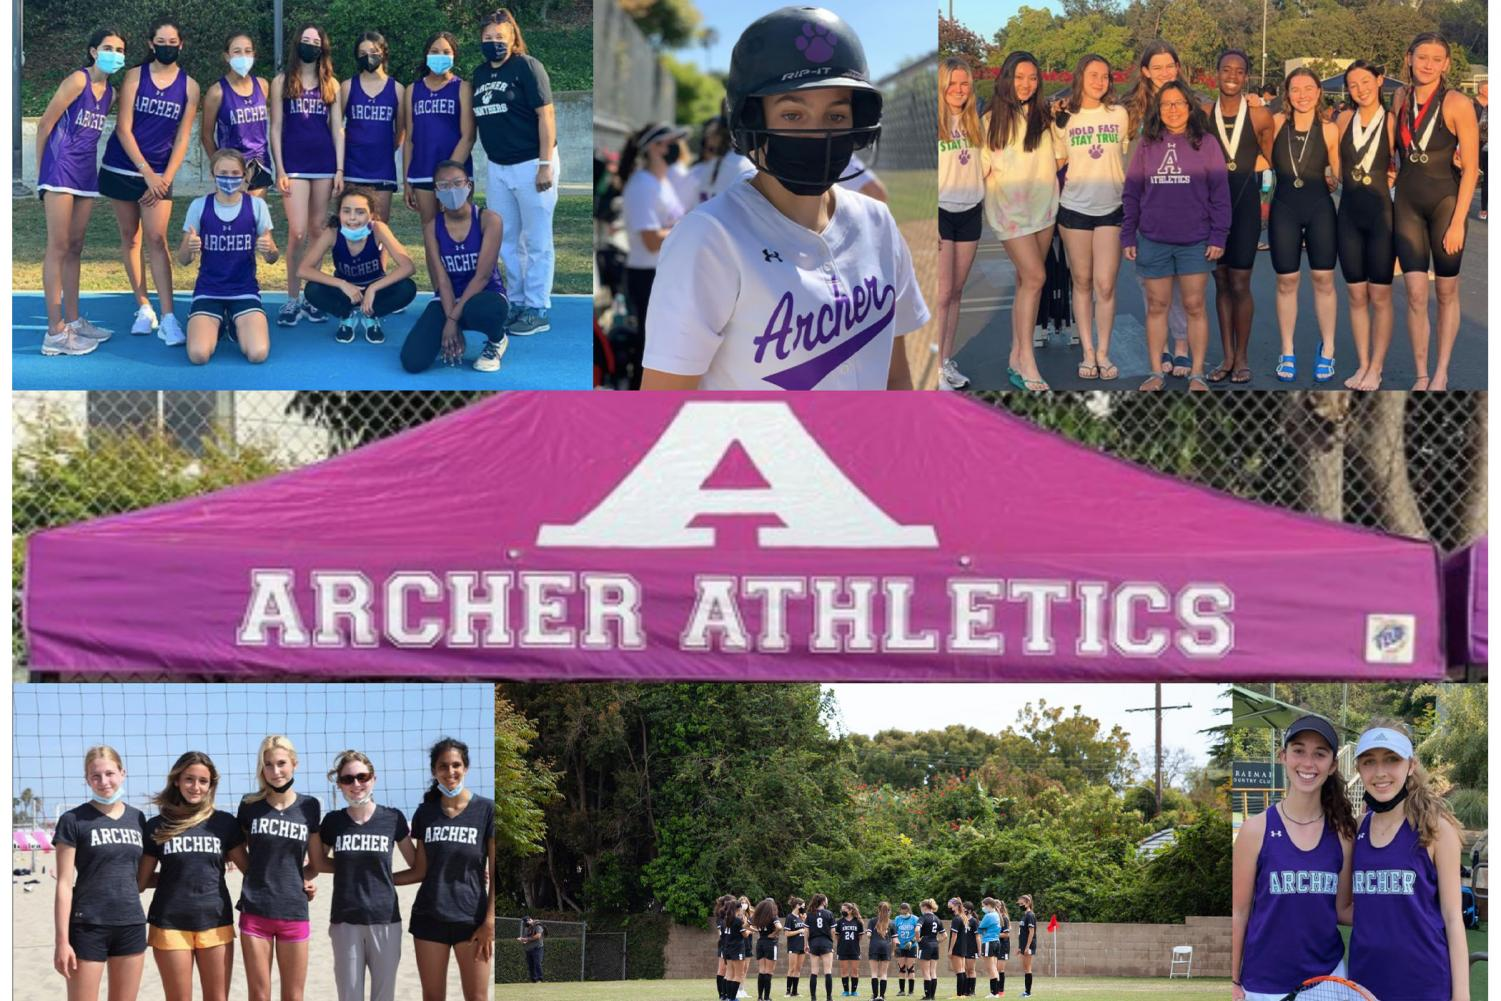 A+year+of+silver+linings%3A+Looking+back+at+2020-2021+season+for+Archer+Athletics